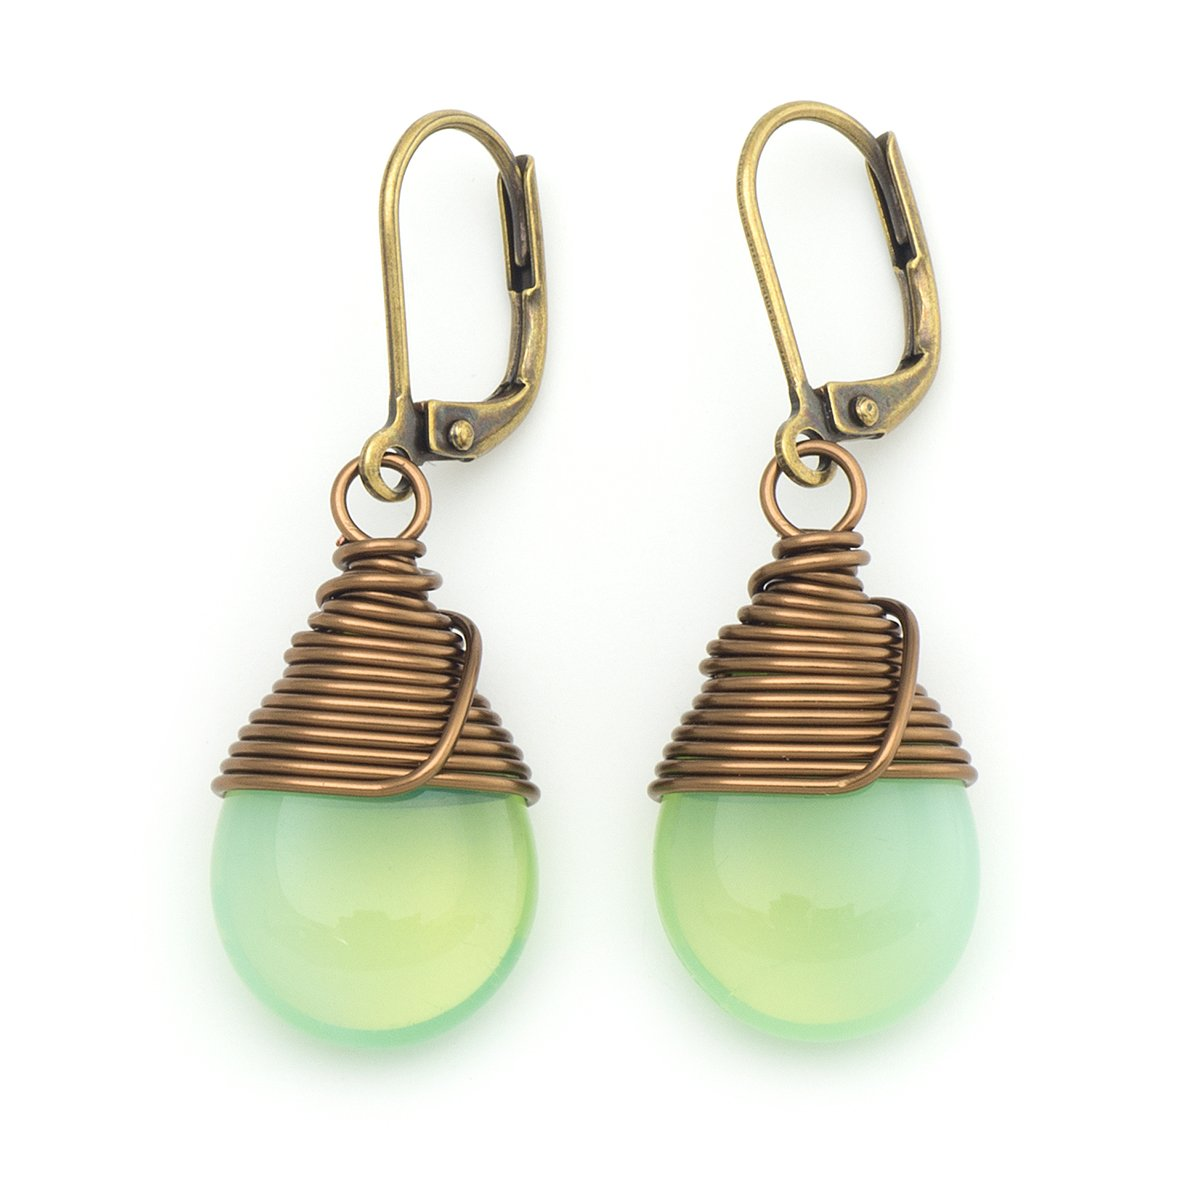 Milky green Czech glass wire-wrapped drop antique bronze tone lever-back earrings